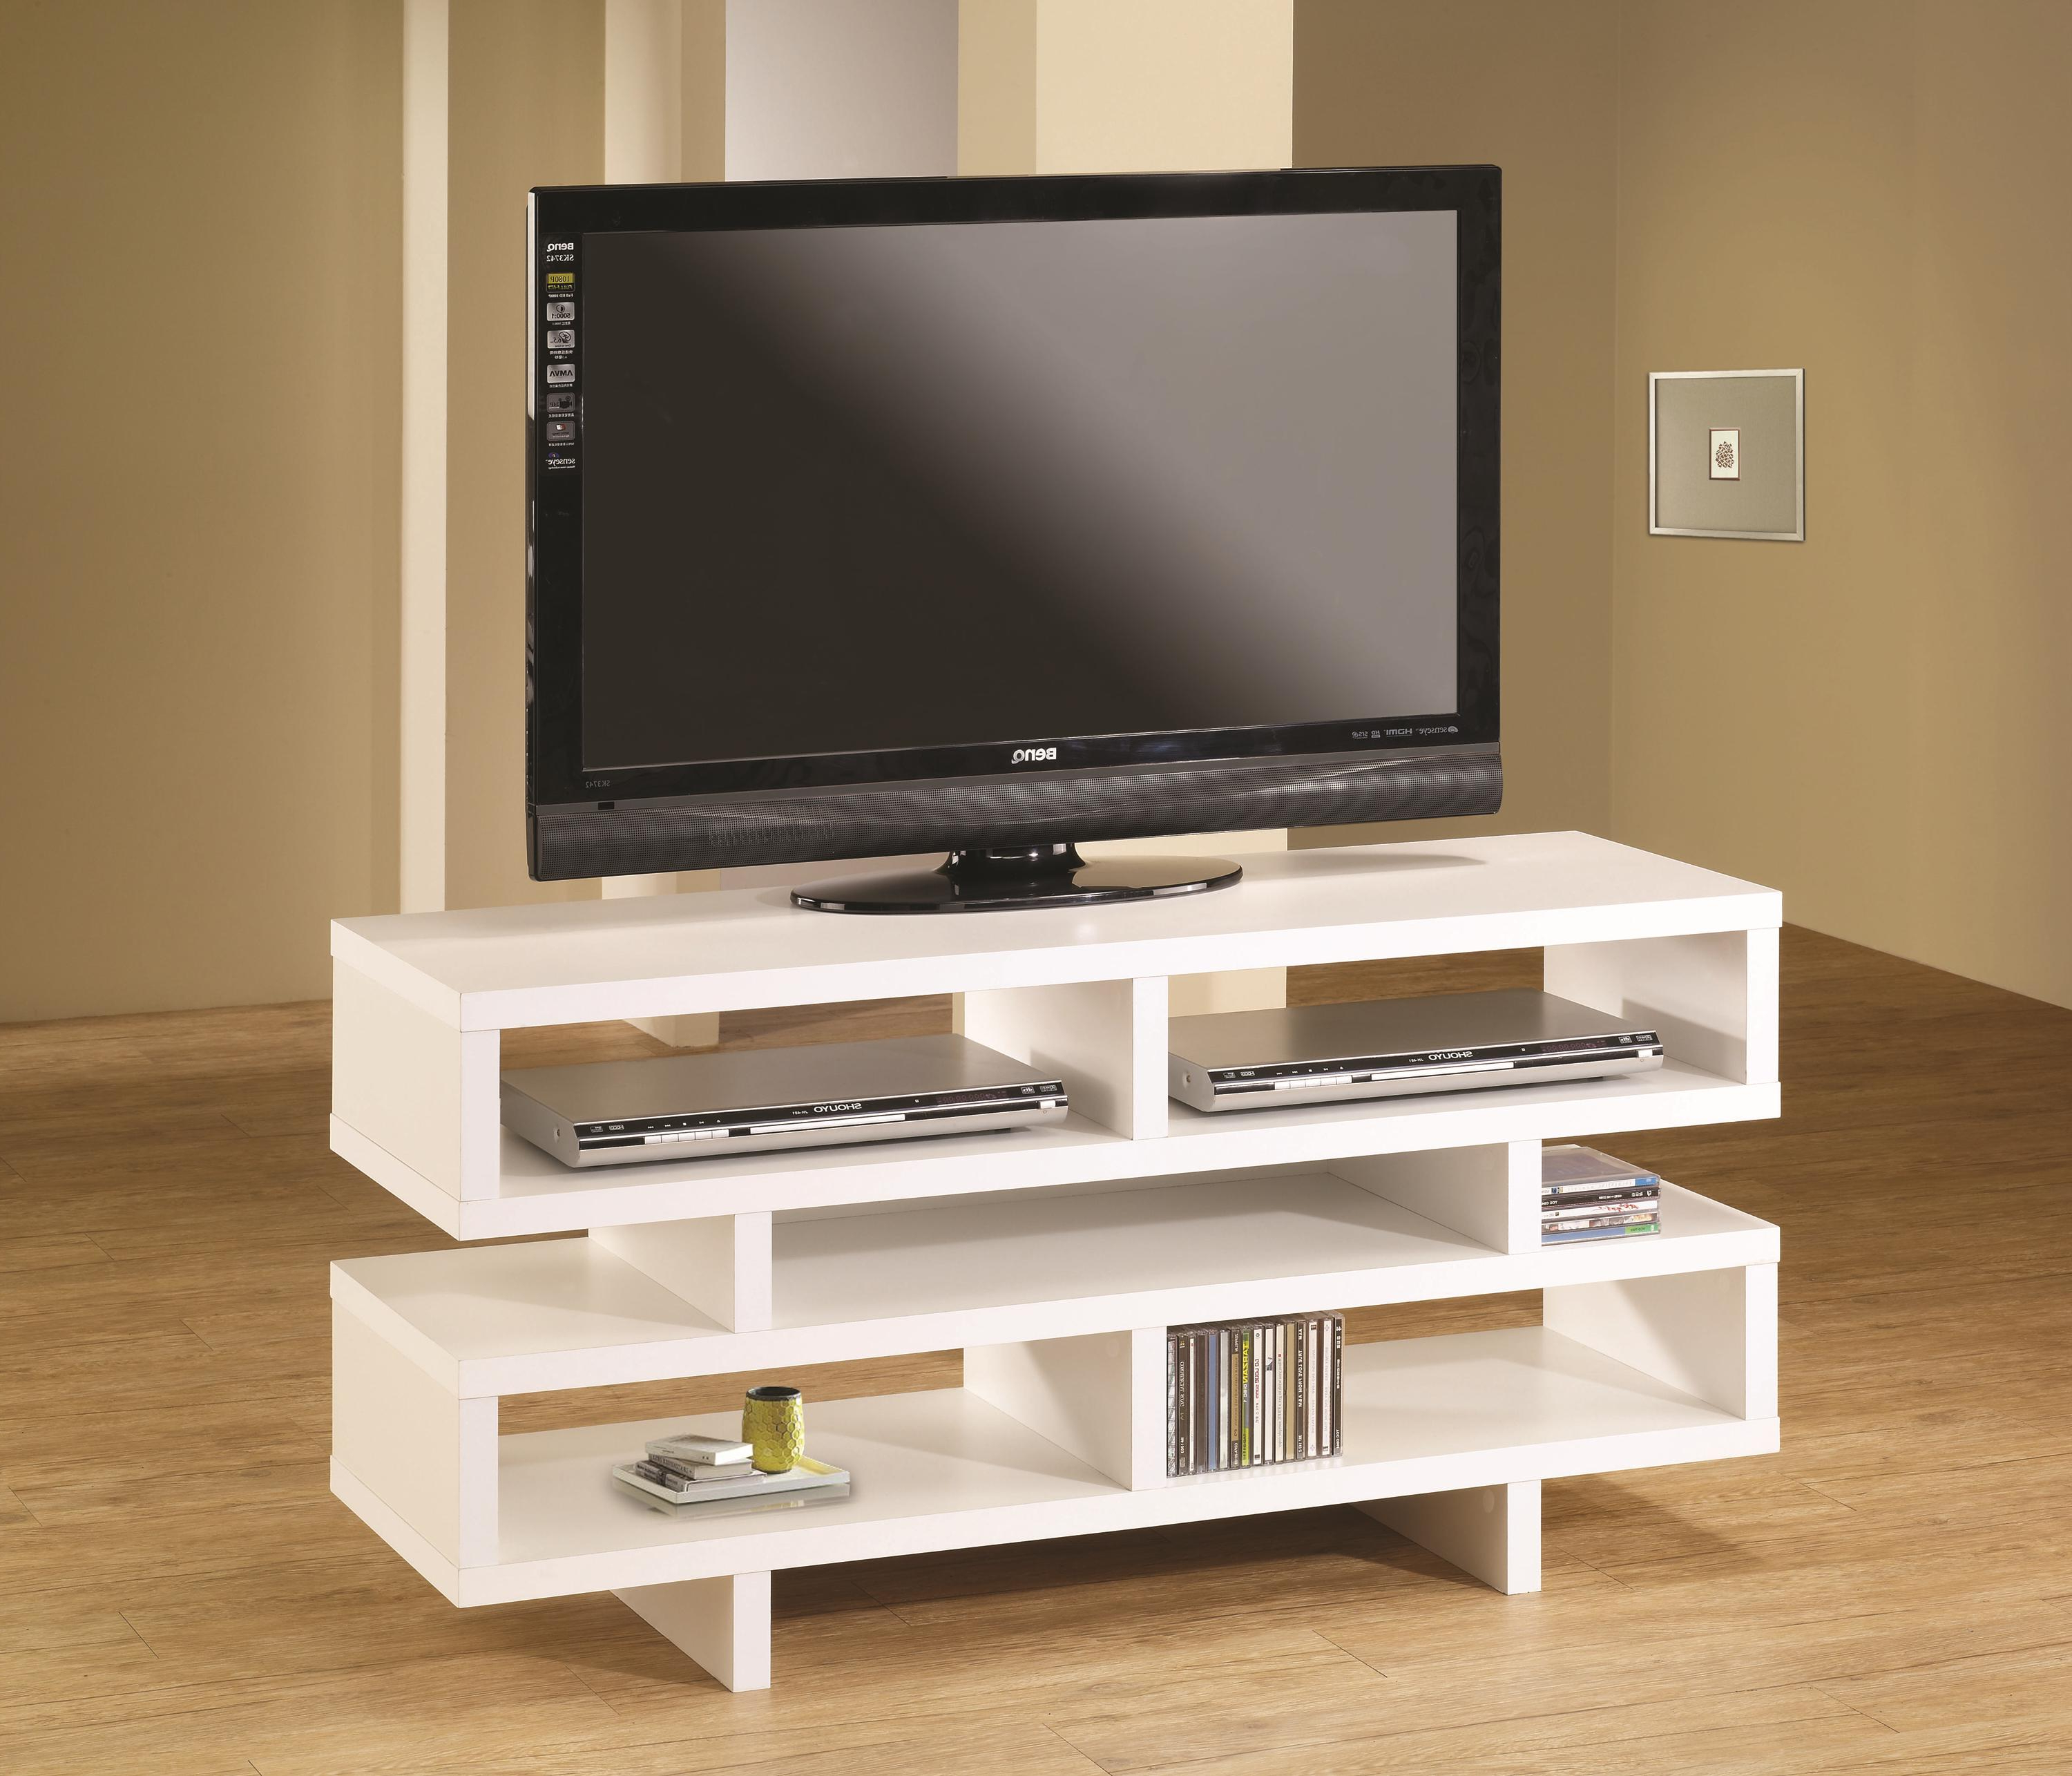 White Contemporary Tv Stands Intended For Most Up To Date Coaster Tv Stands Contemporary Tv Console With Open Storage & White (View 12 of 20)